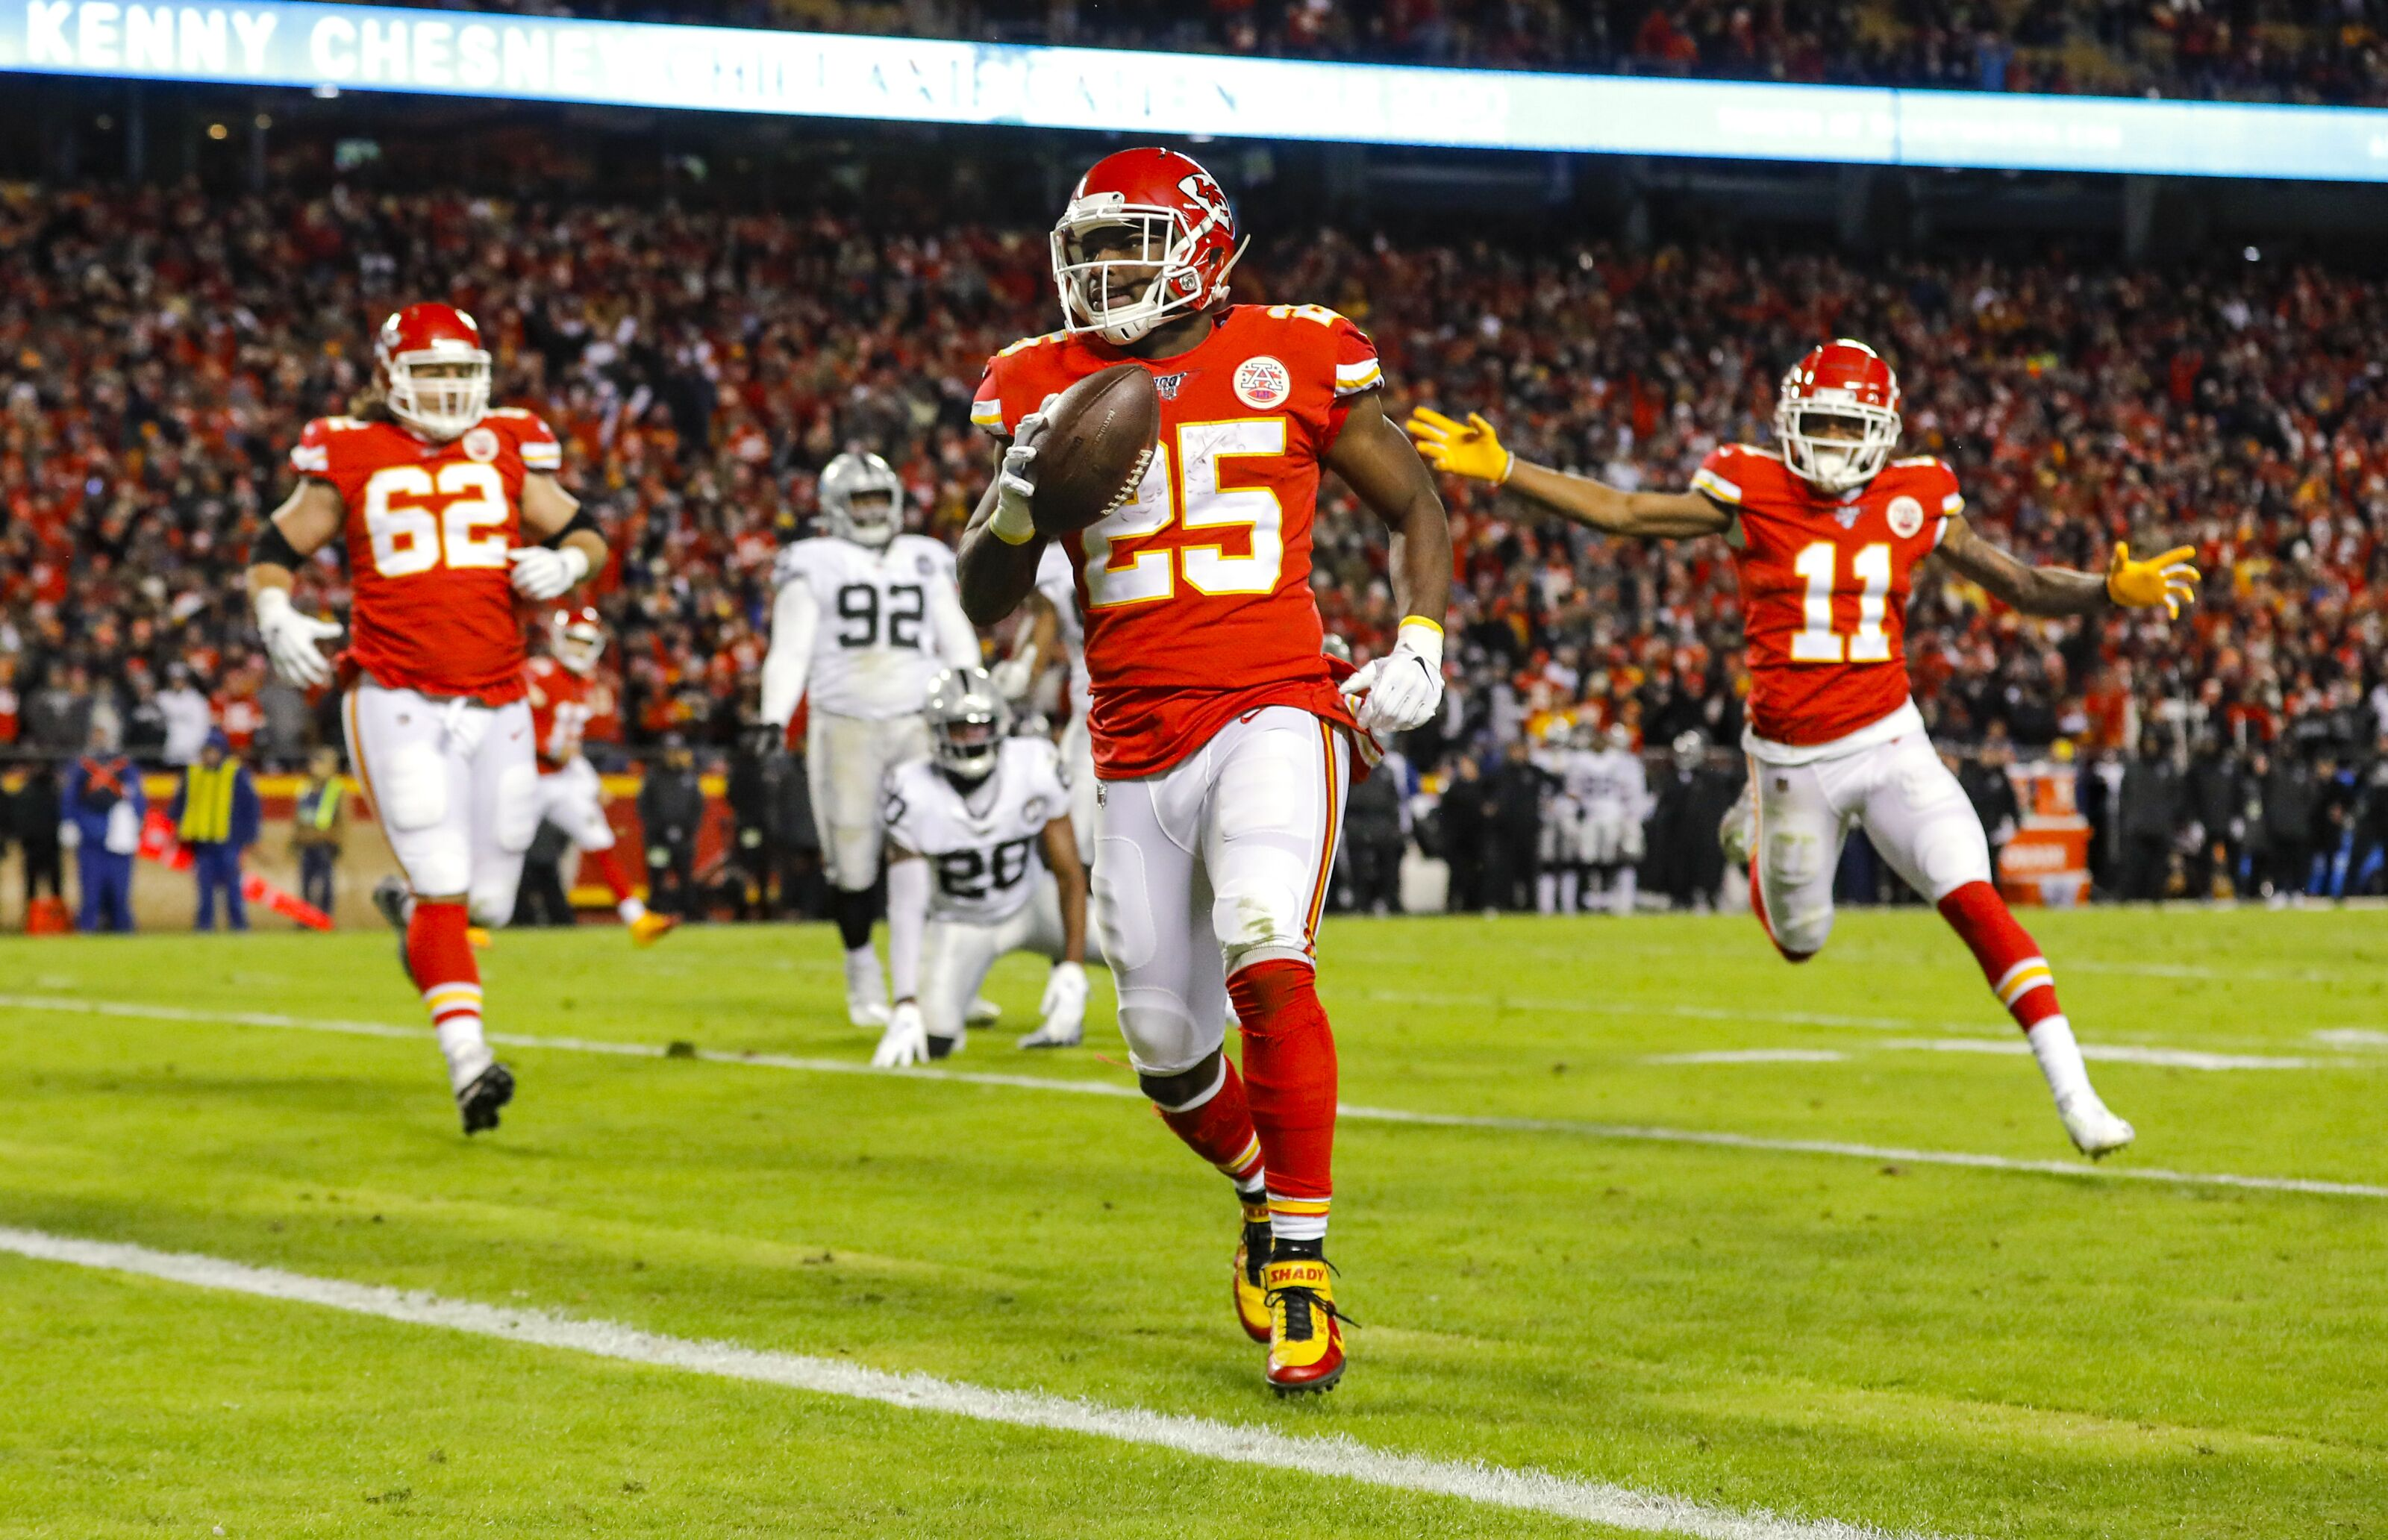 LeSean McCoy has been a missing person for the Chiefs postseason